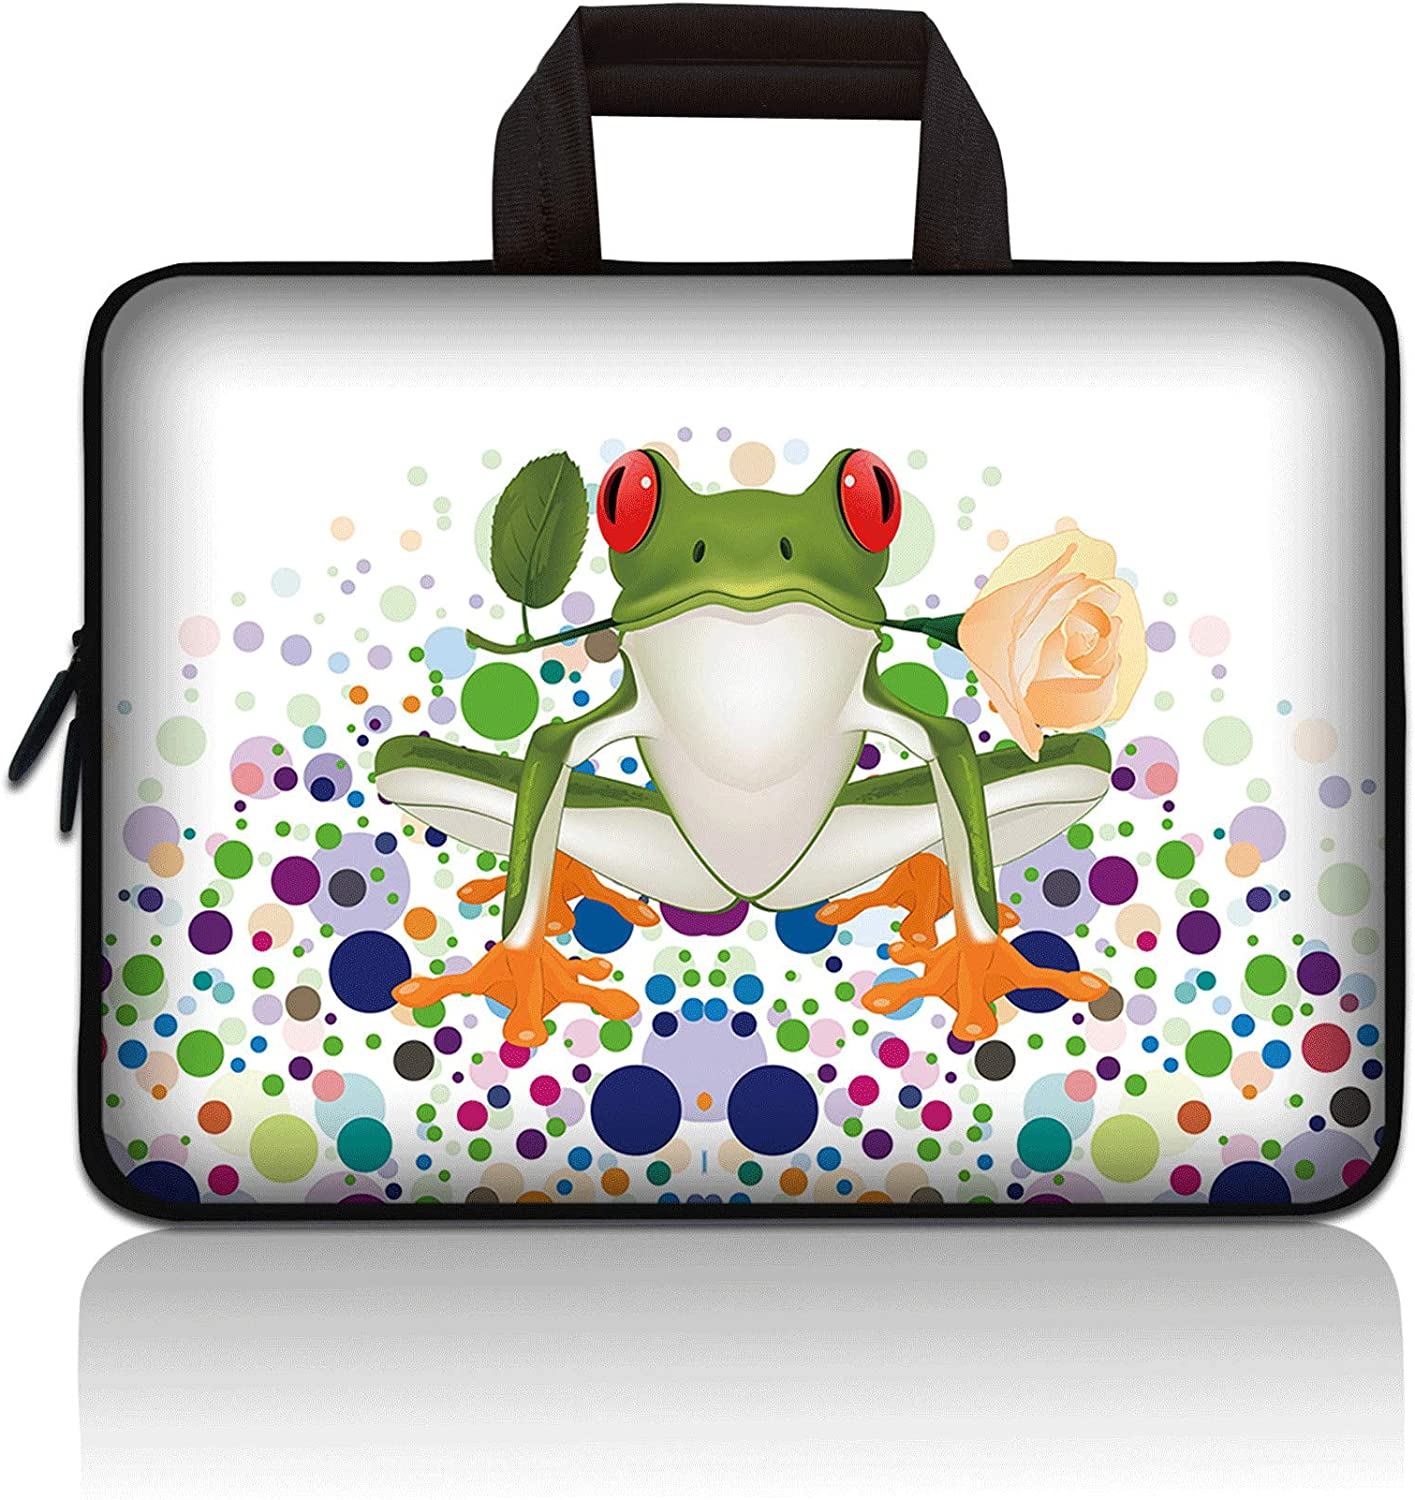 11 11.6 12 12.1 12.5 inch Laptop Carrying Bag Chromebook Case Notebook Ultrabook Bag Tablet Cover Neoprene Sleeve Compatible with Apple MacBook Air Samsung Google Acer HP DELL Lenovo Asus (Cute Frog)